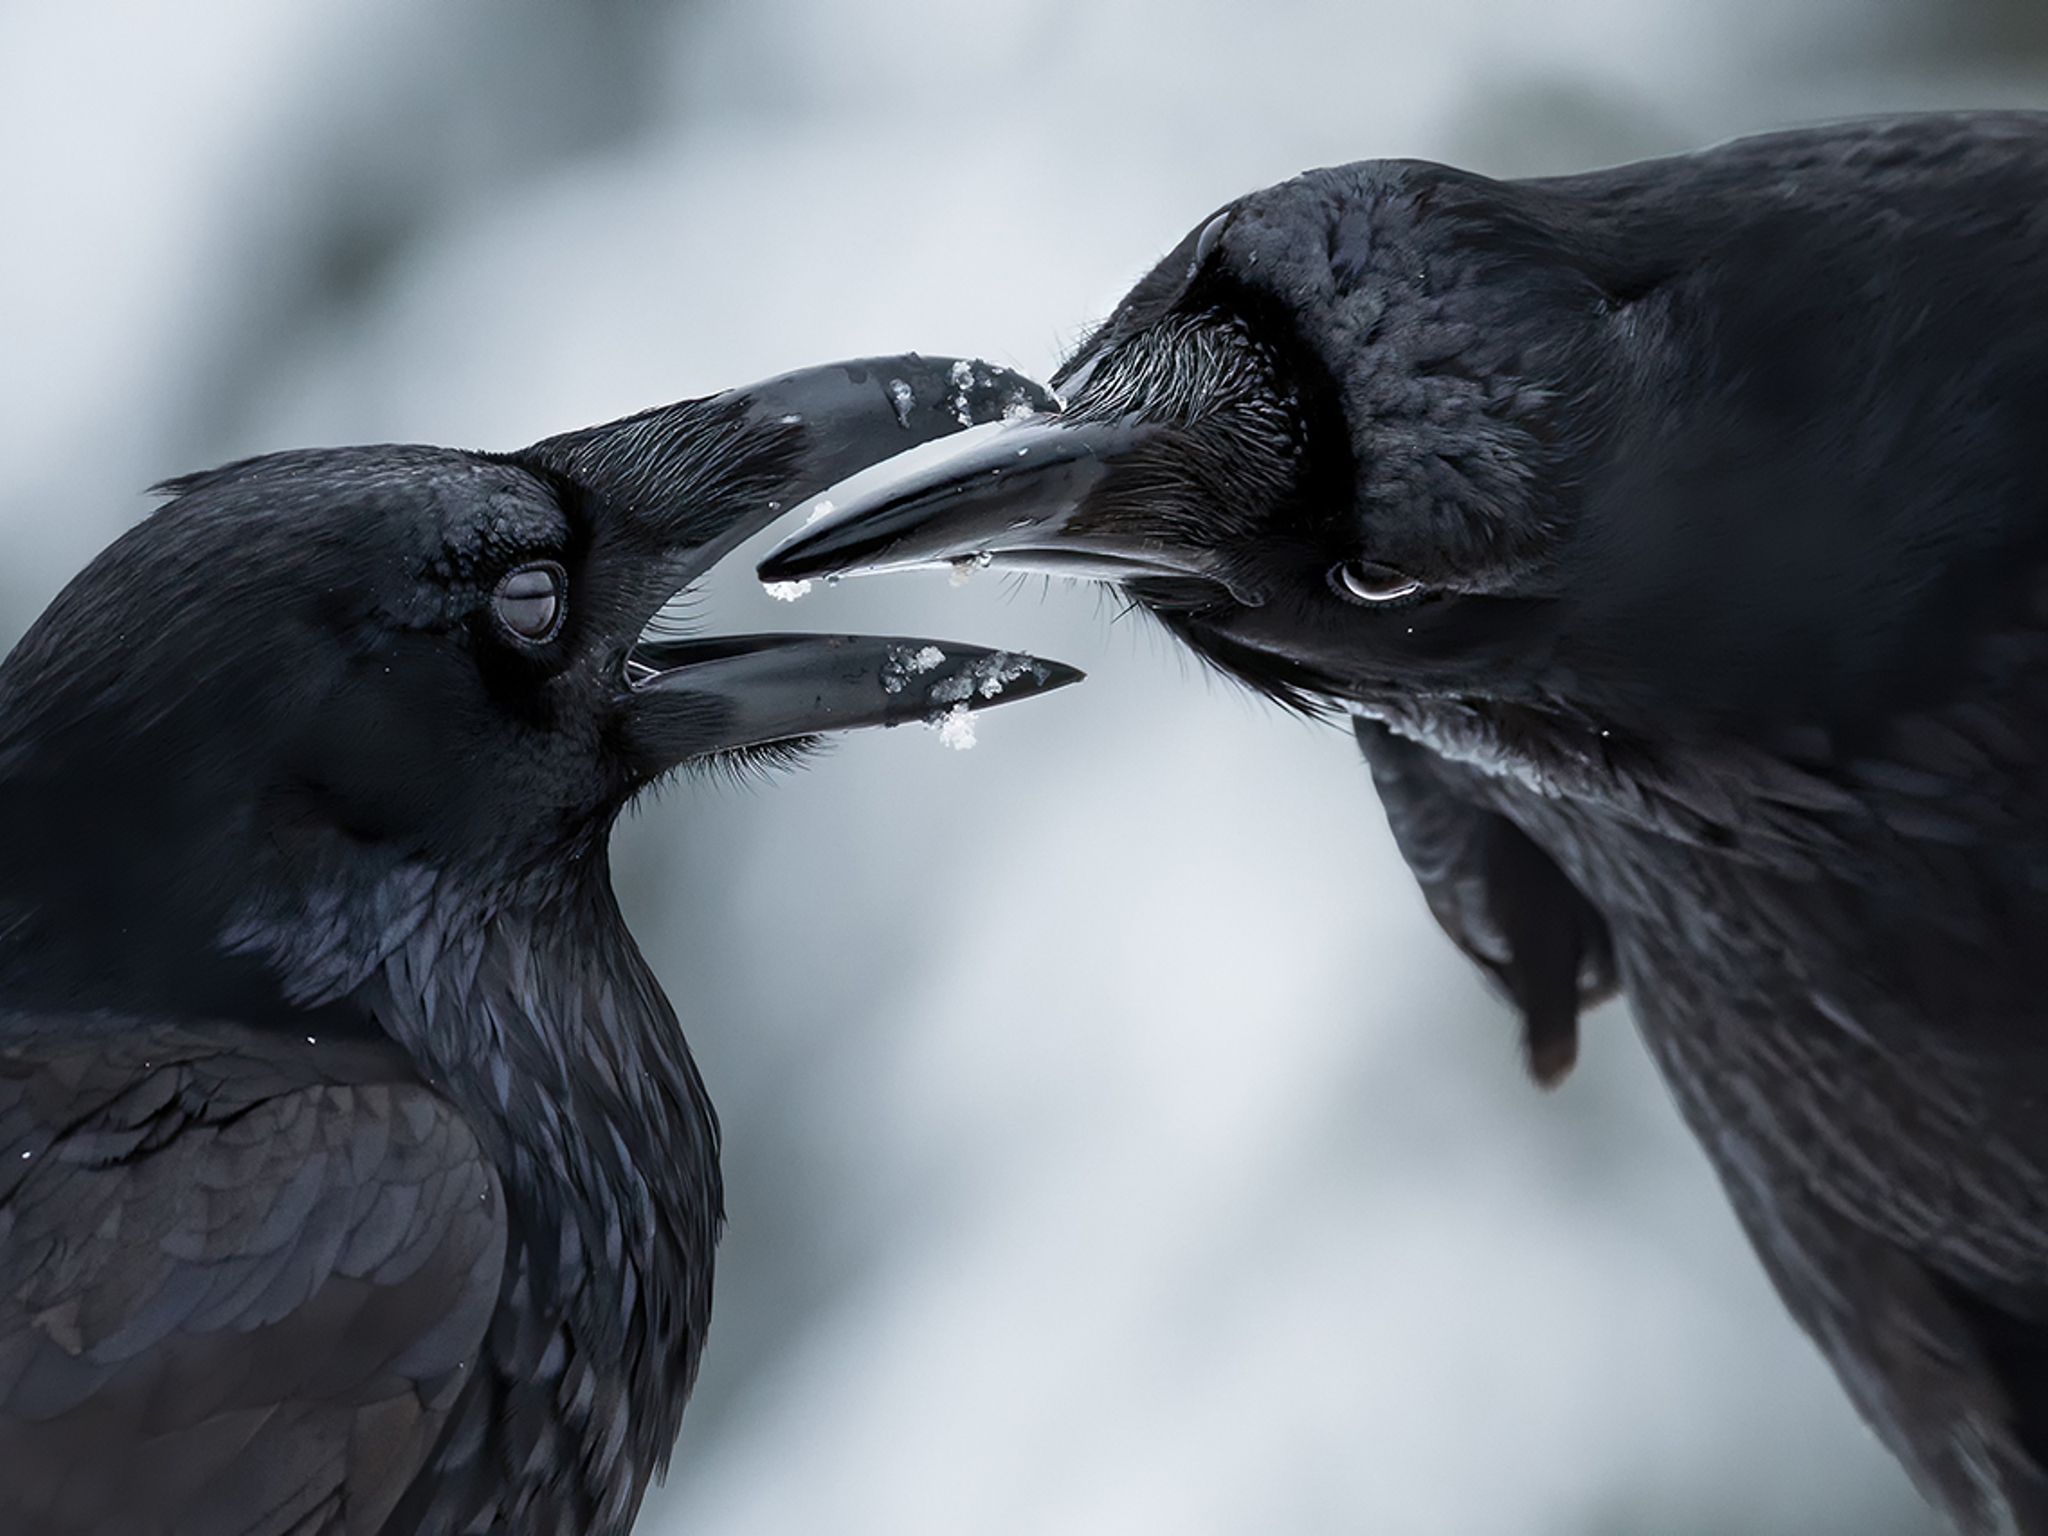 These kissing ravens are among the winning shots at Wildlife Photographer of the Year